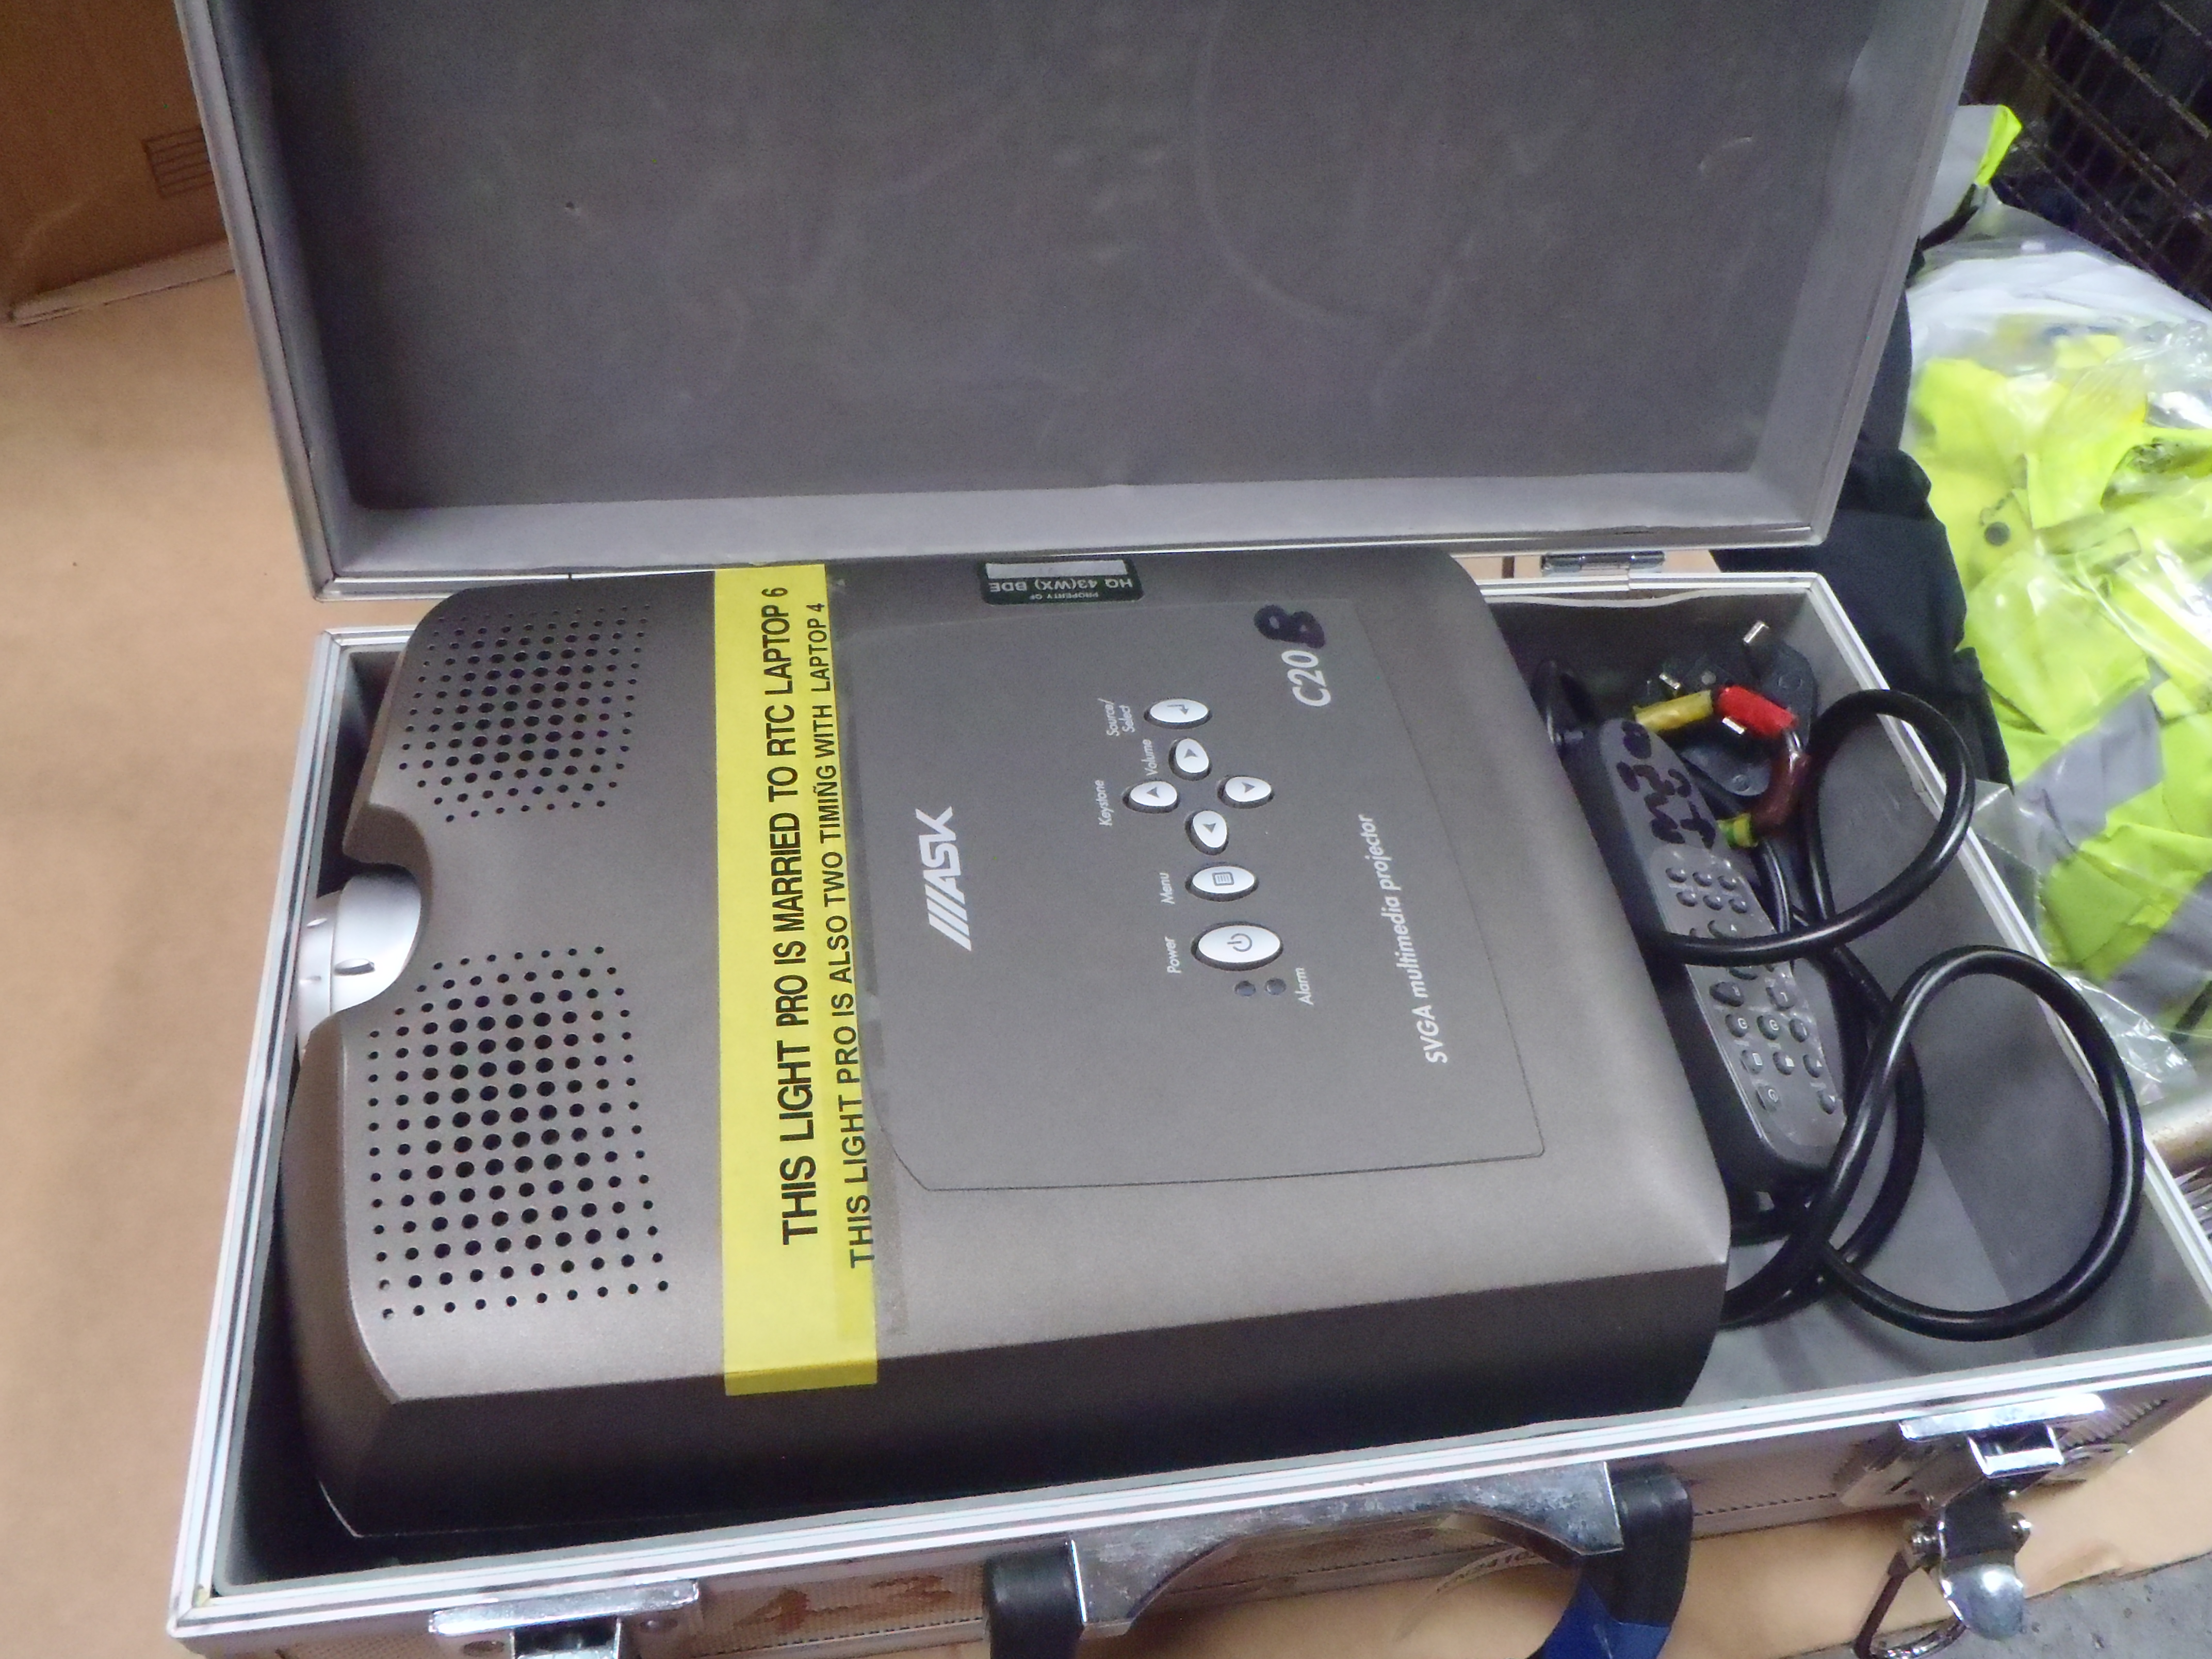 SVGA Multimedia Projector and Case - Used - Untested